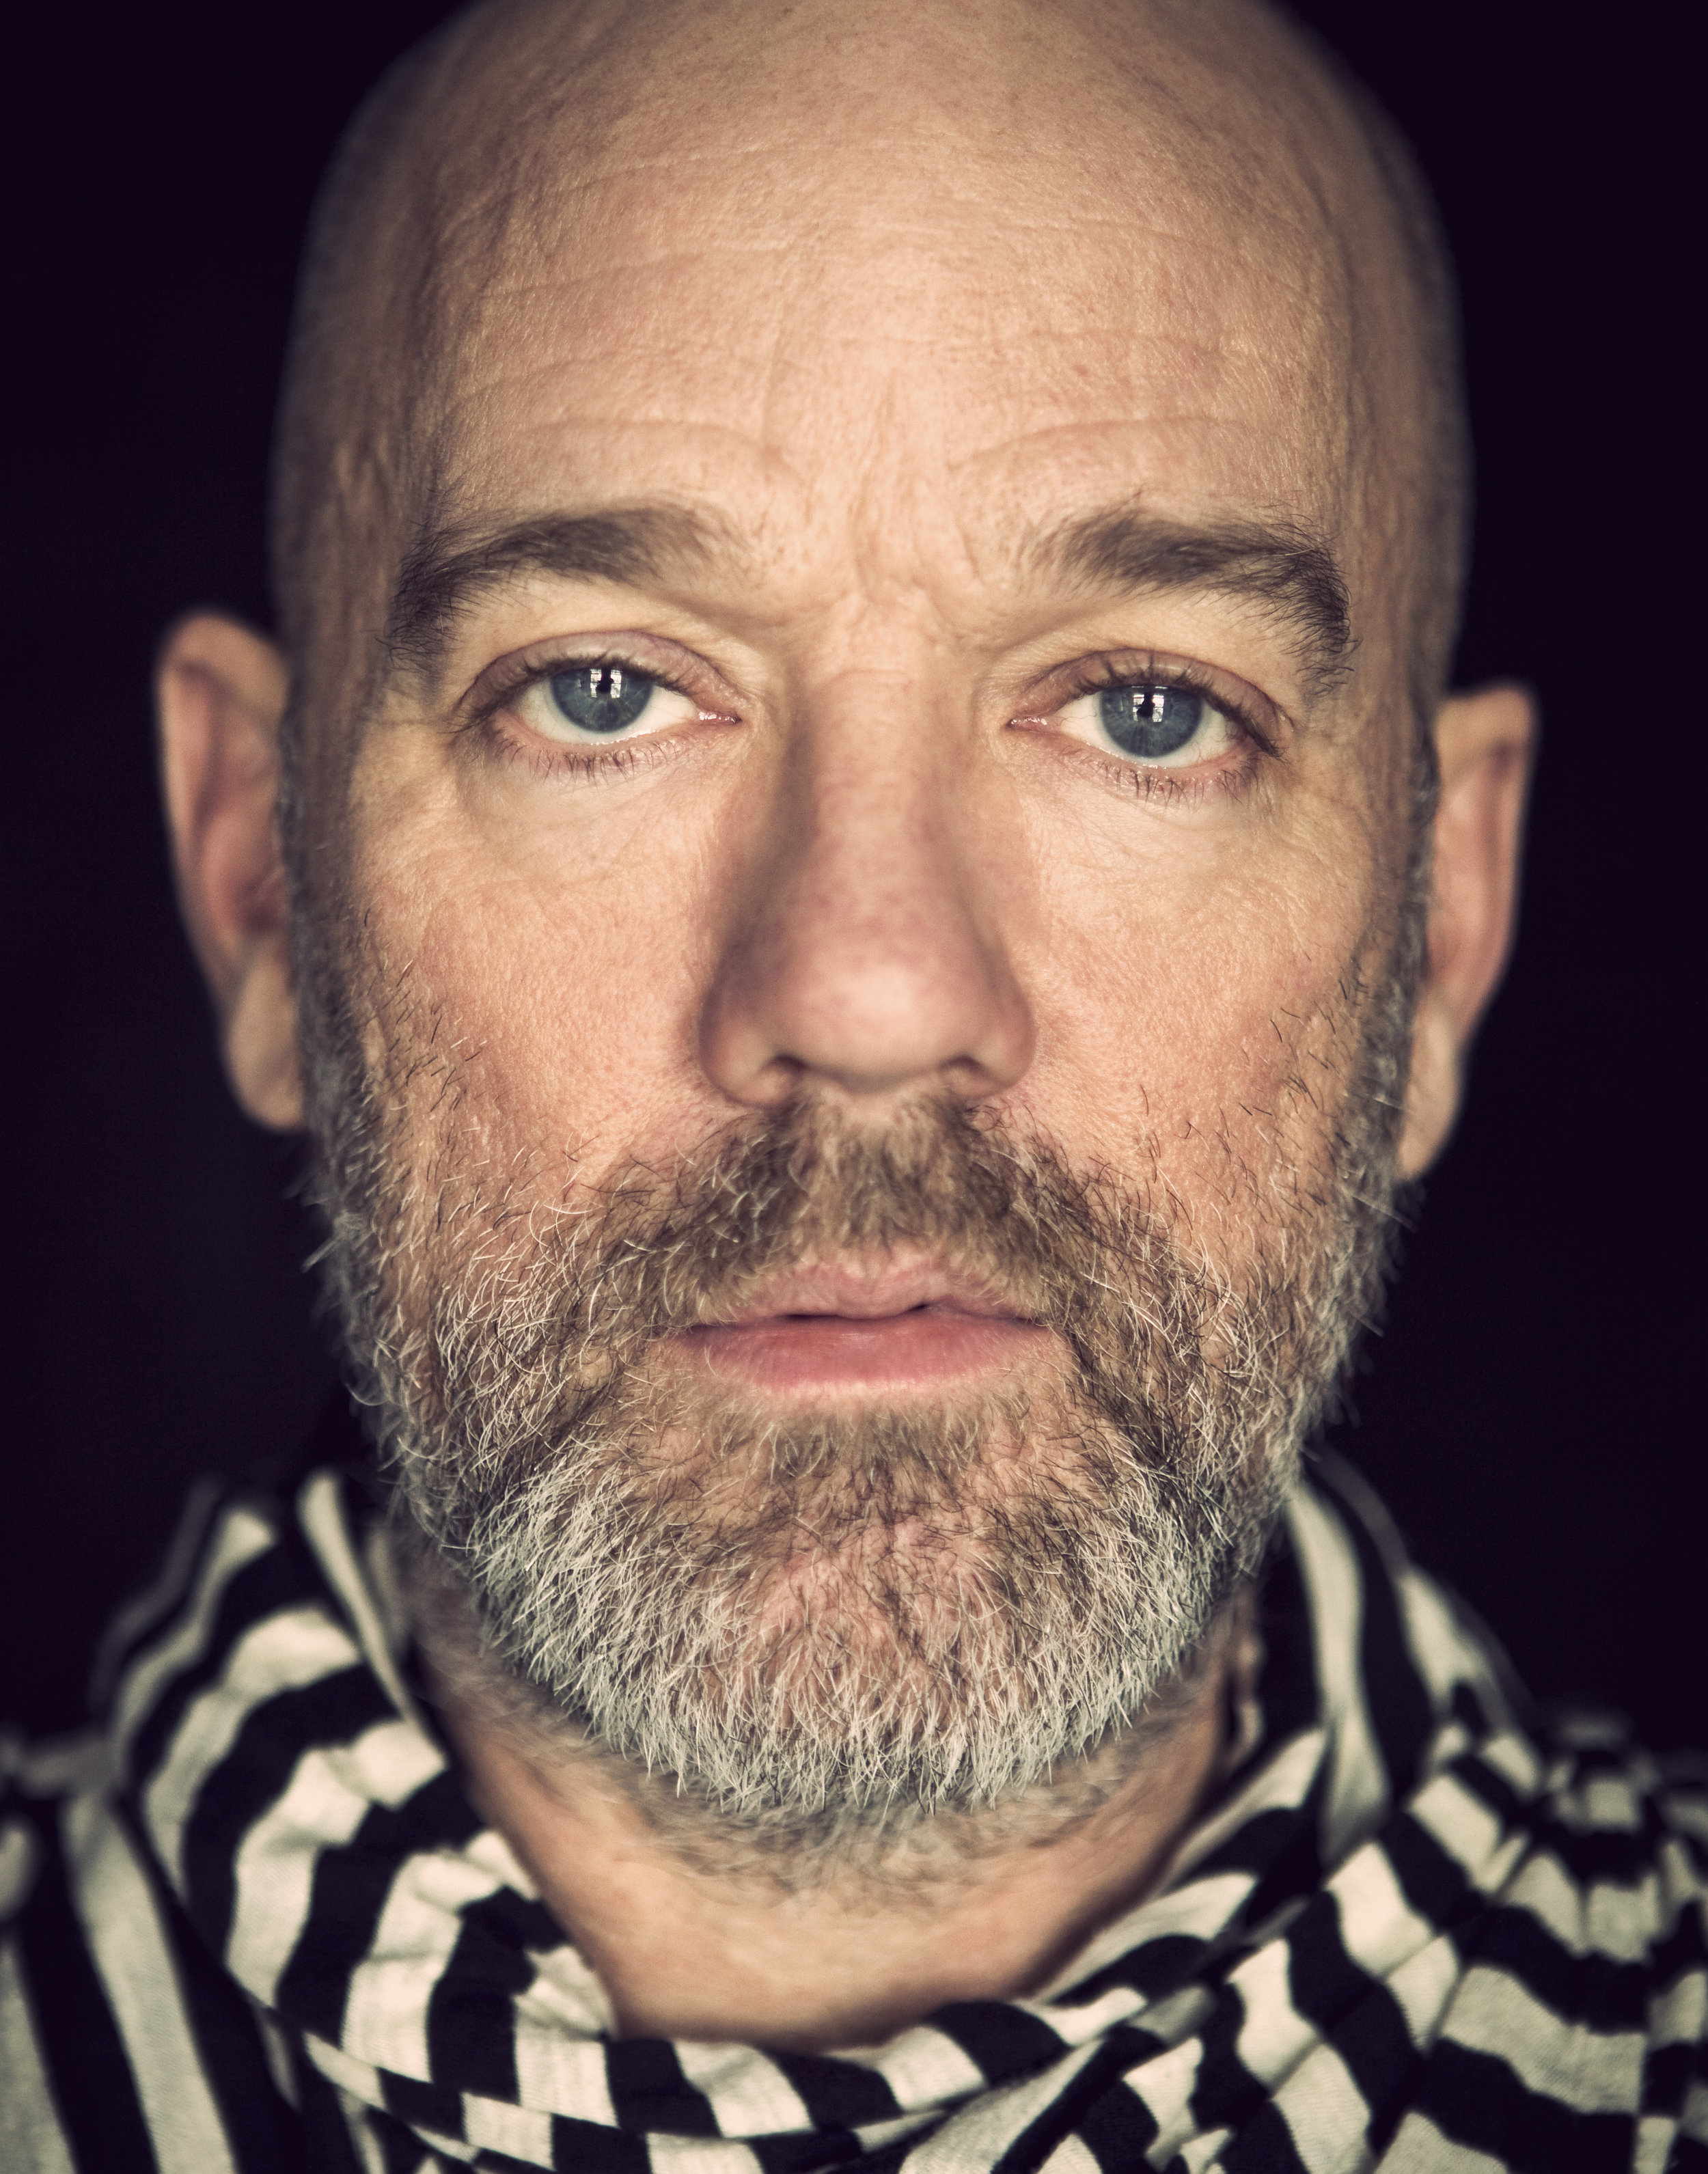 Michael Stipe, New York City, 2011